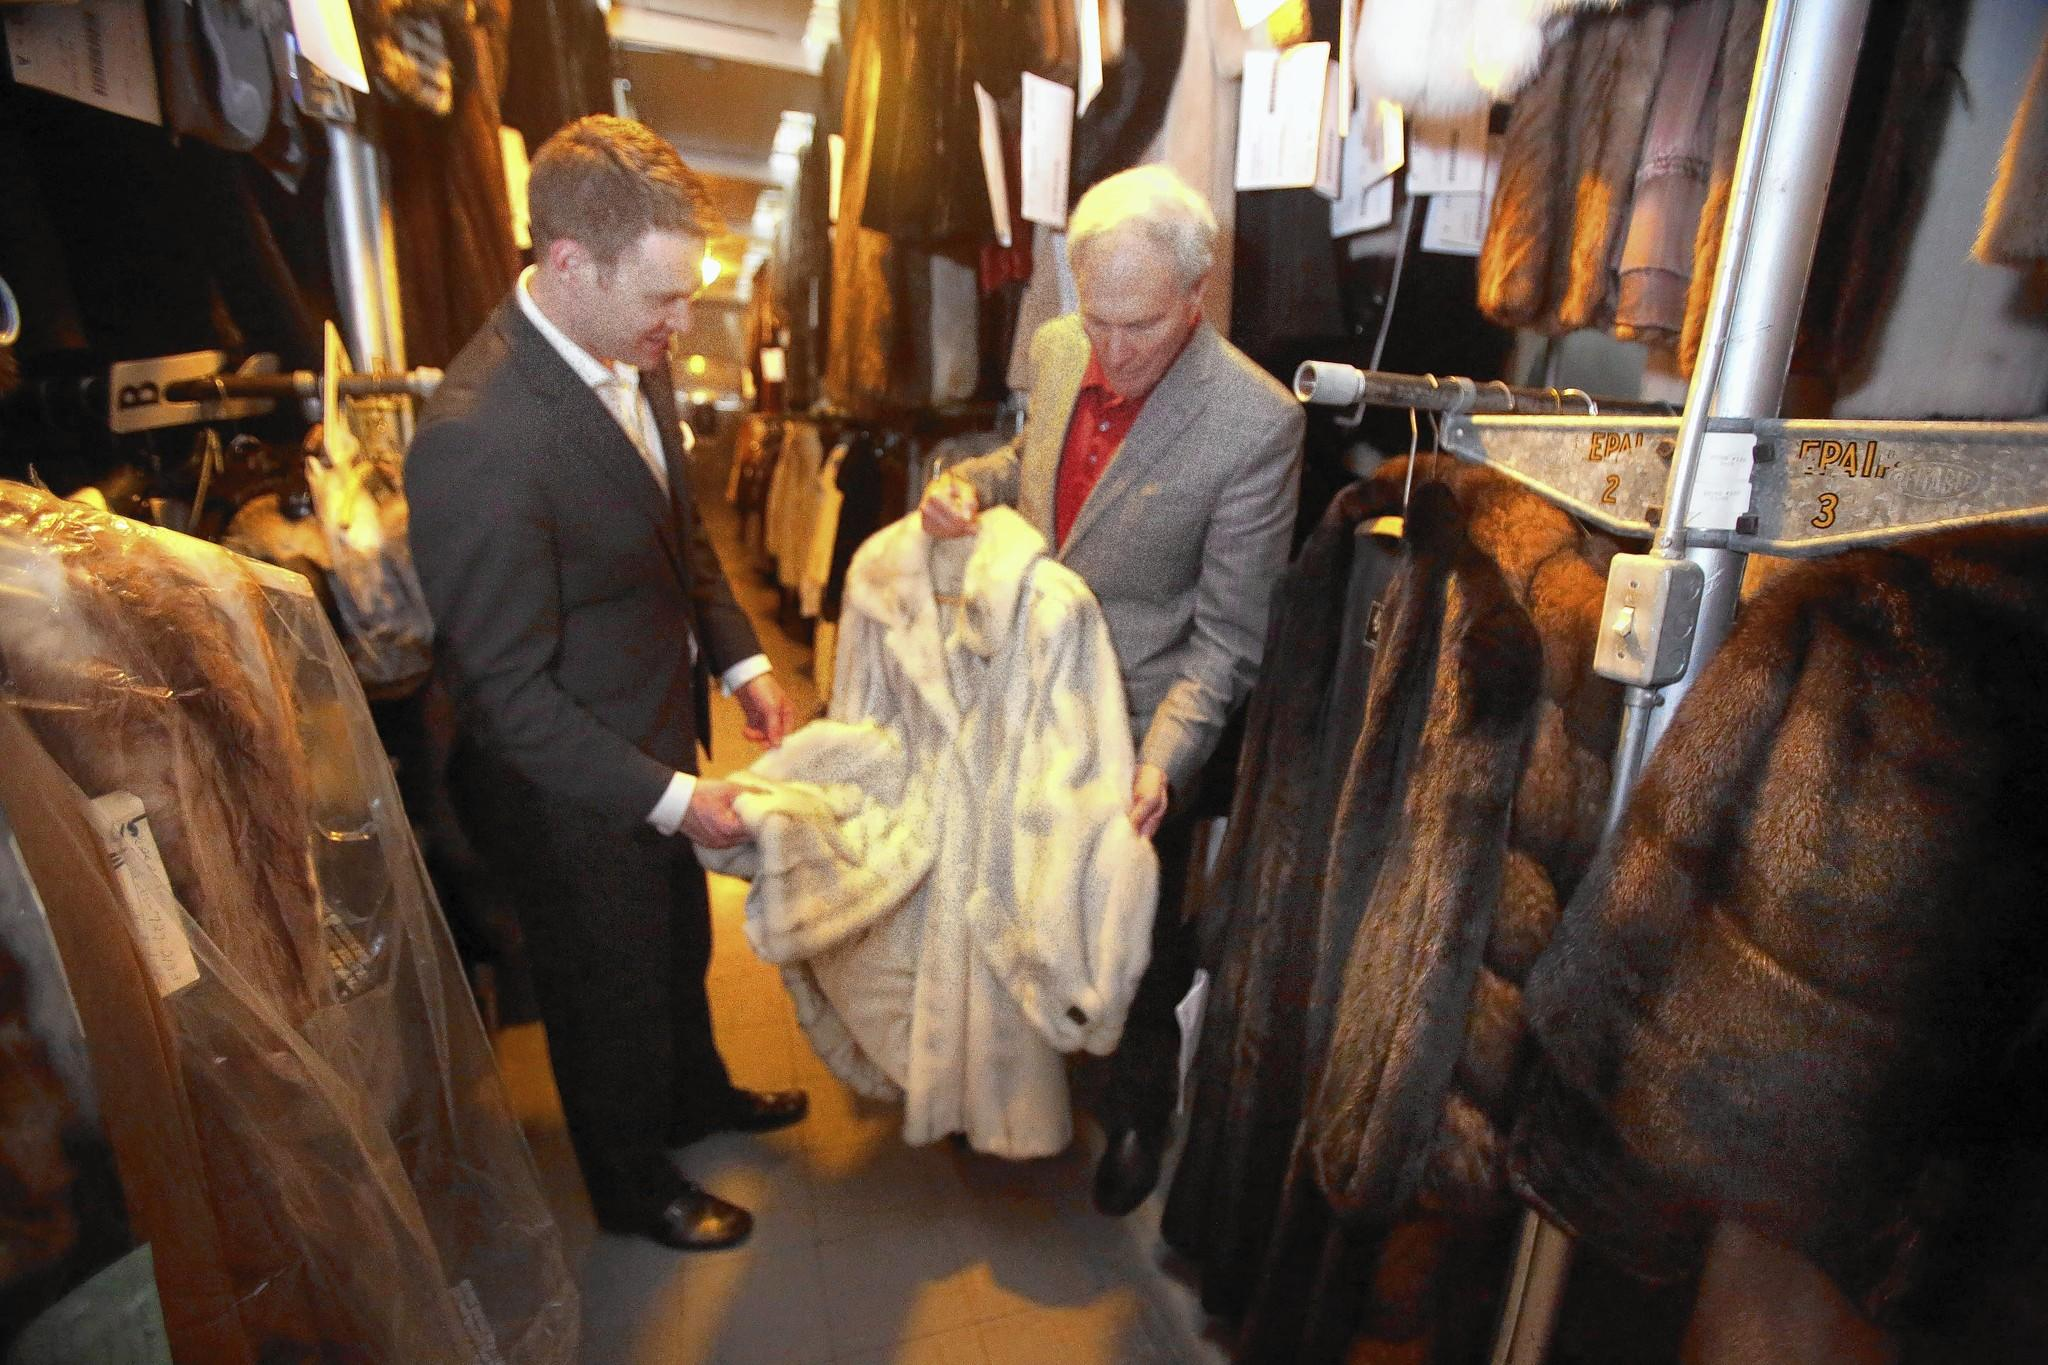 Son Alex LaBellman and father Art LaBellman look at furs in their cold storage facility at their downtown store. LaBelle Furs has been a family business for 95 years in downtown Orlando.